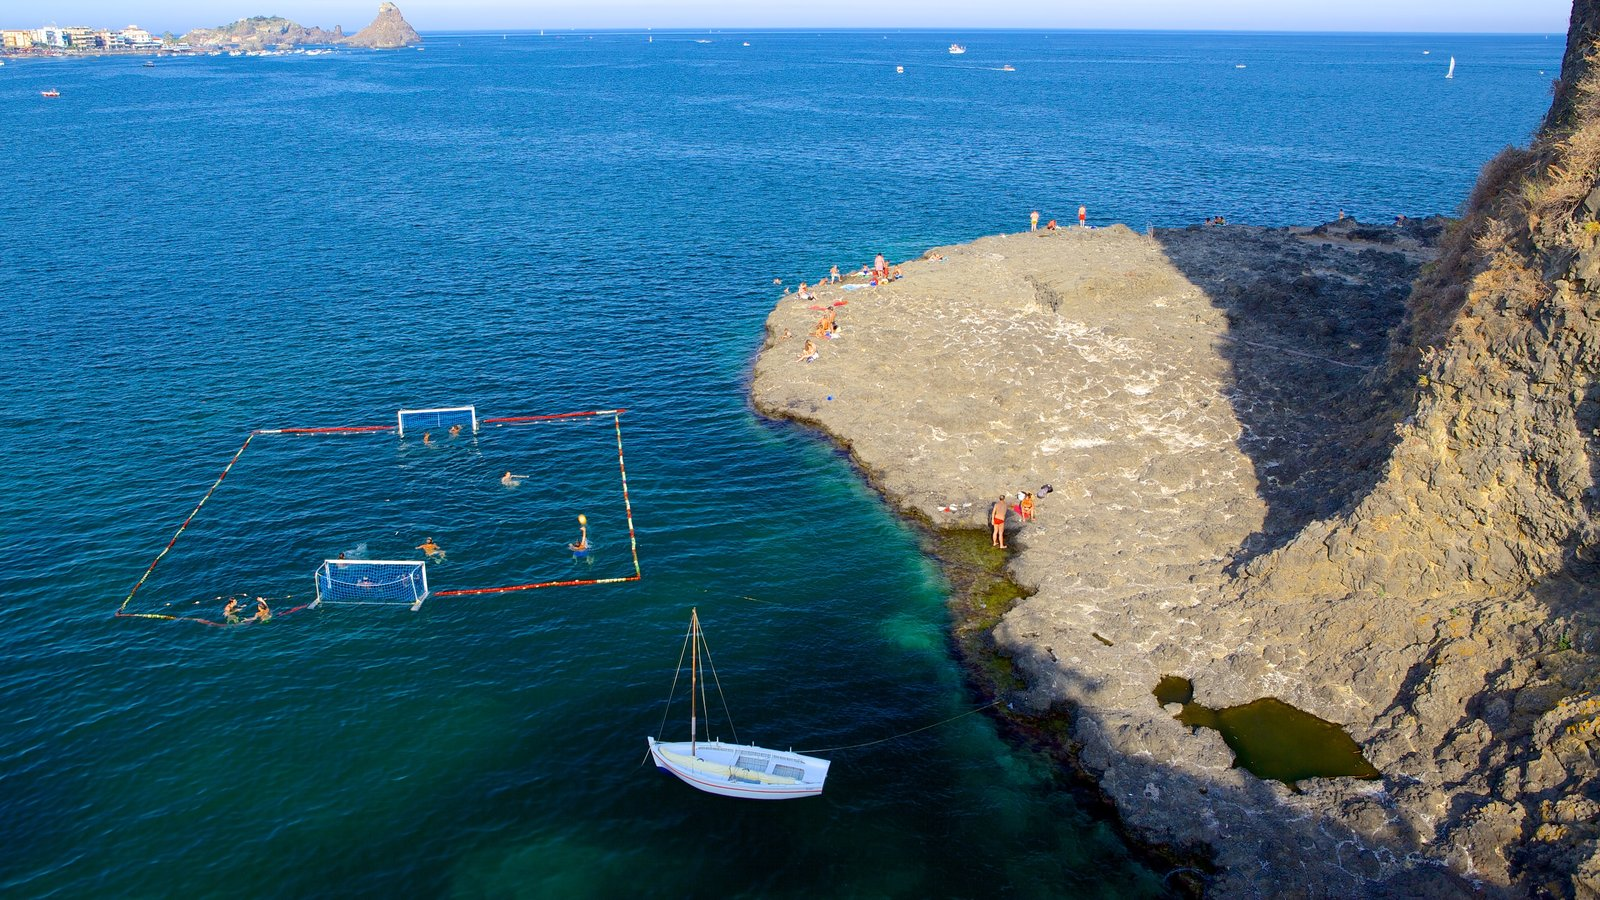 Aci Castello showing rocky coastline and watersports